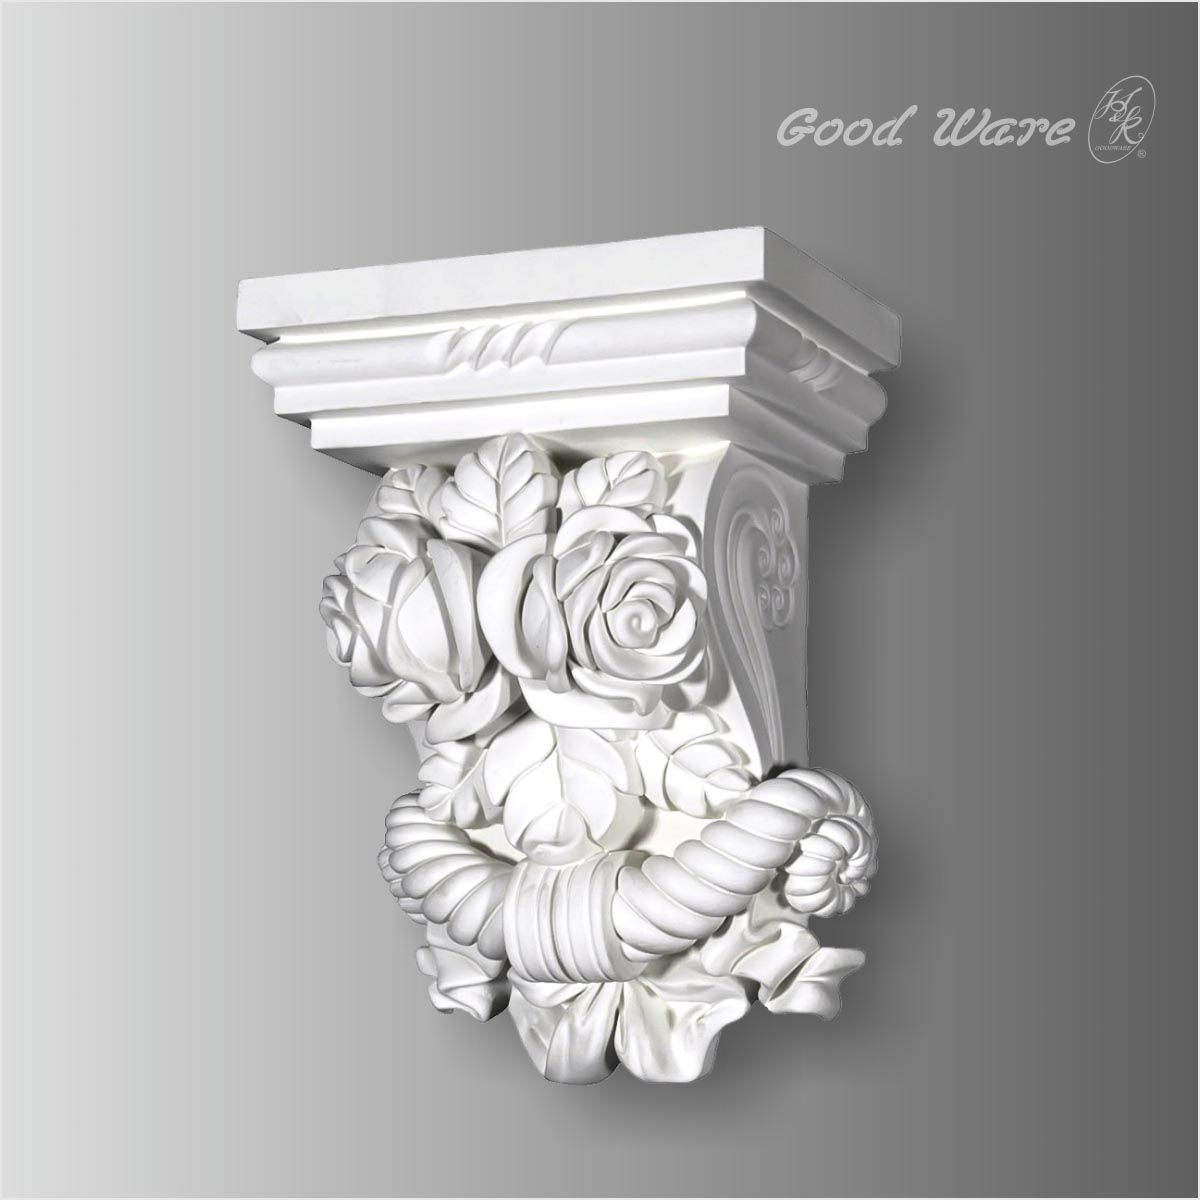 Medium Of Corbels For Sale